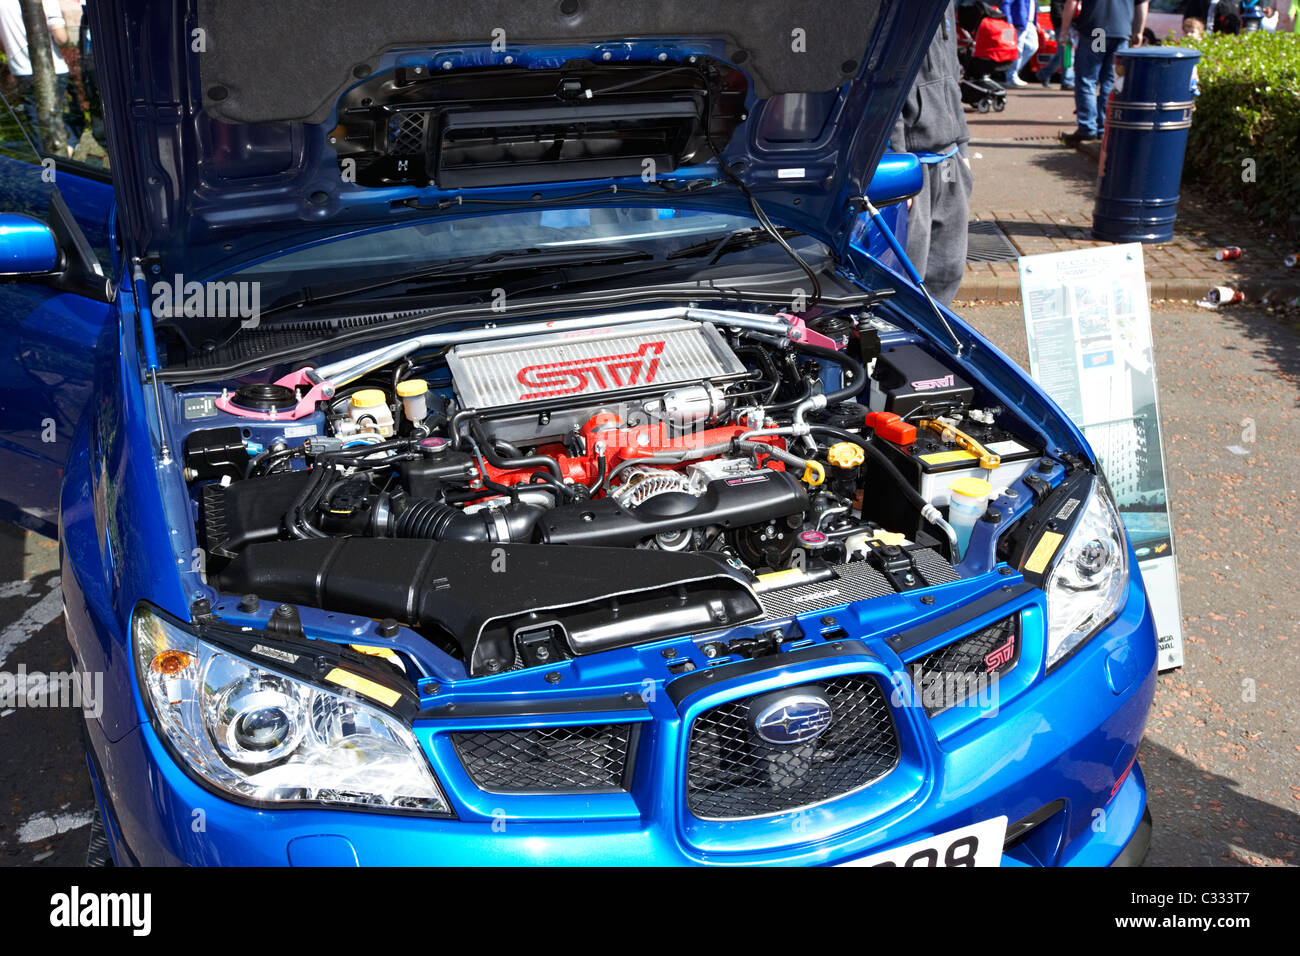 Clean Spotless Engine Of A Subaru Impreza Wrx Sti Show Car At A